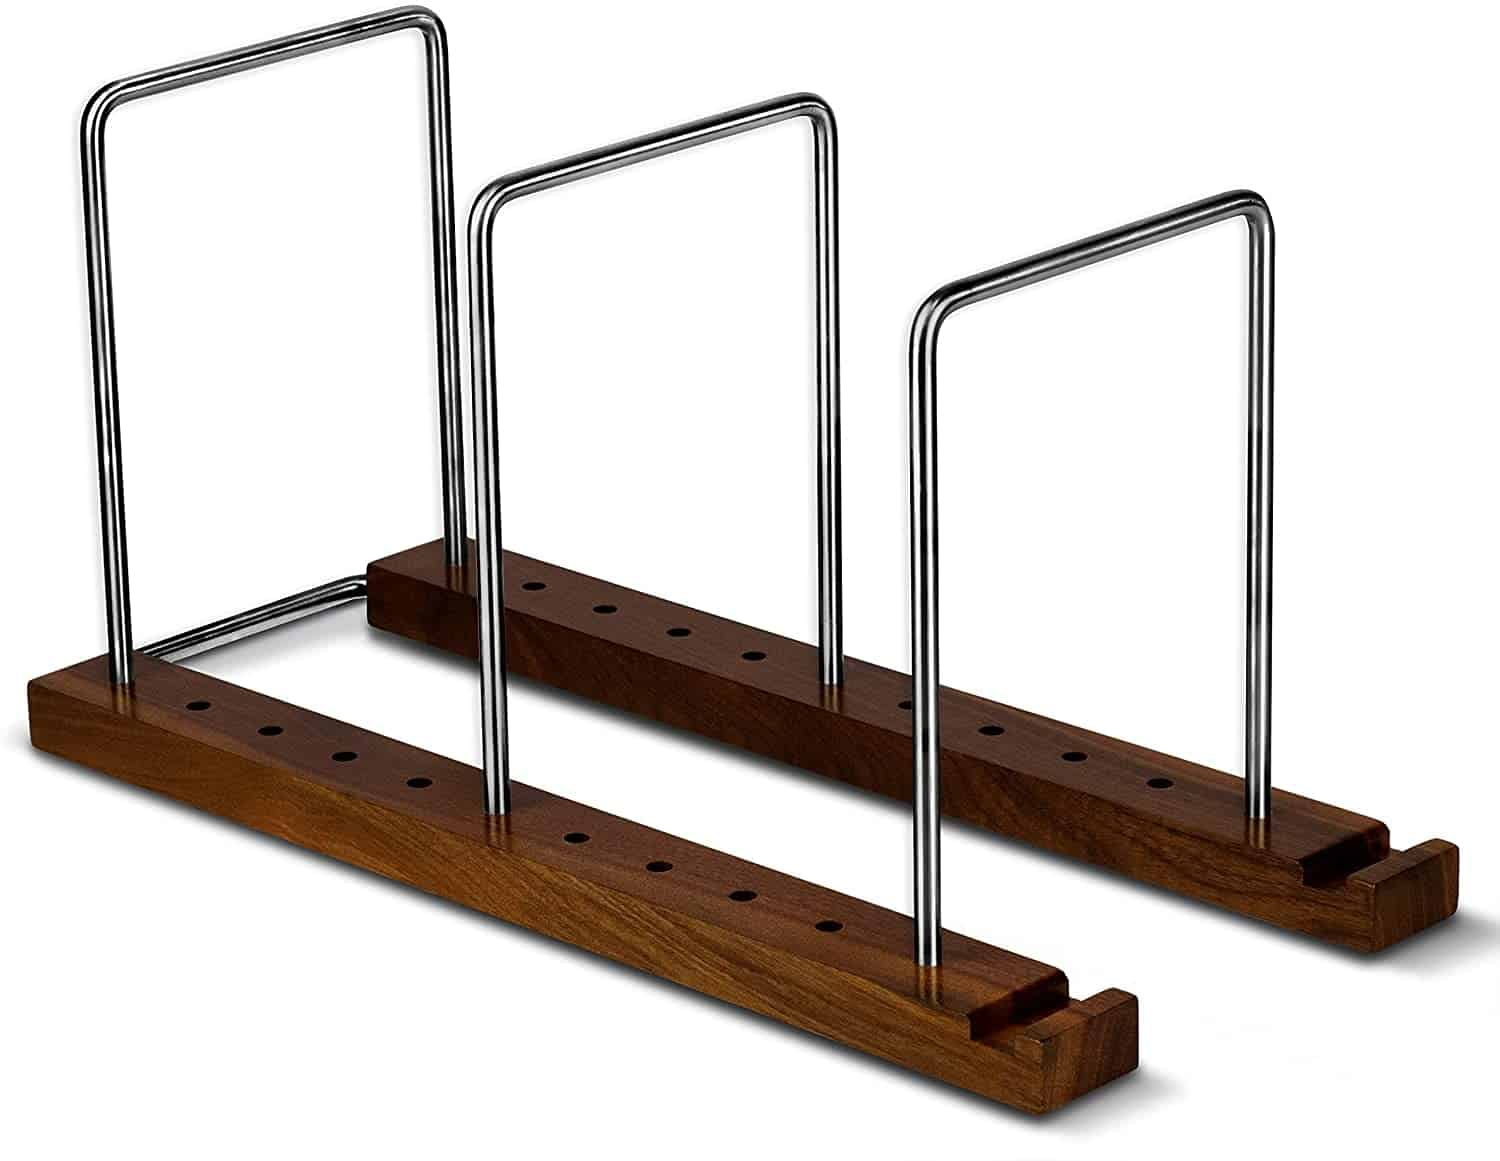 Holes, Rods, and Rails